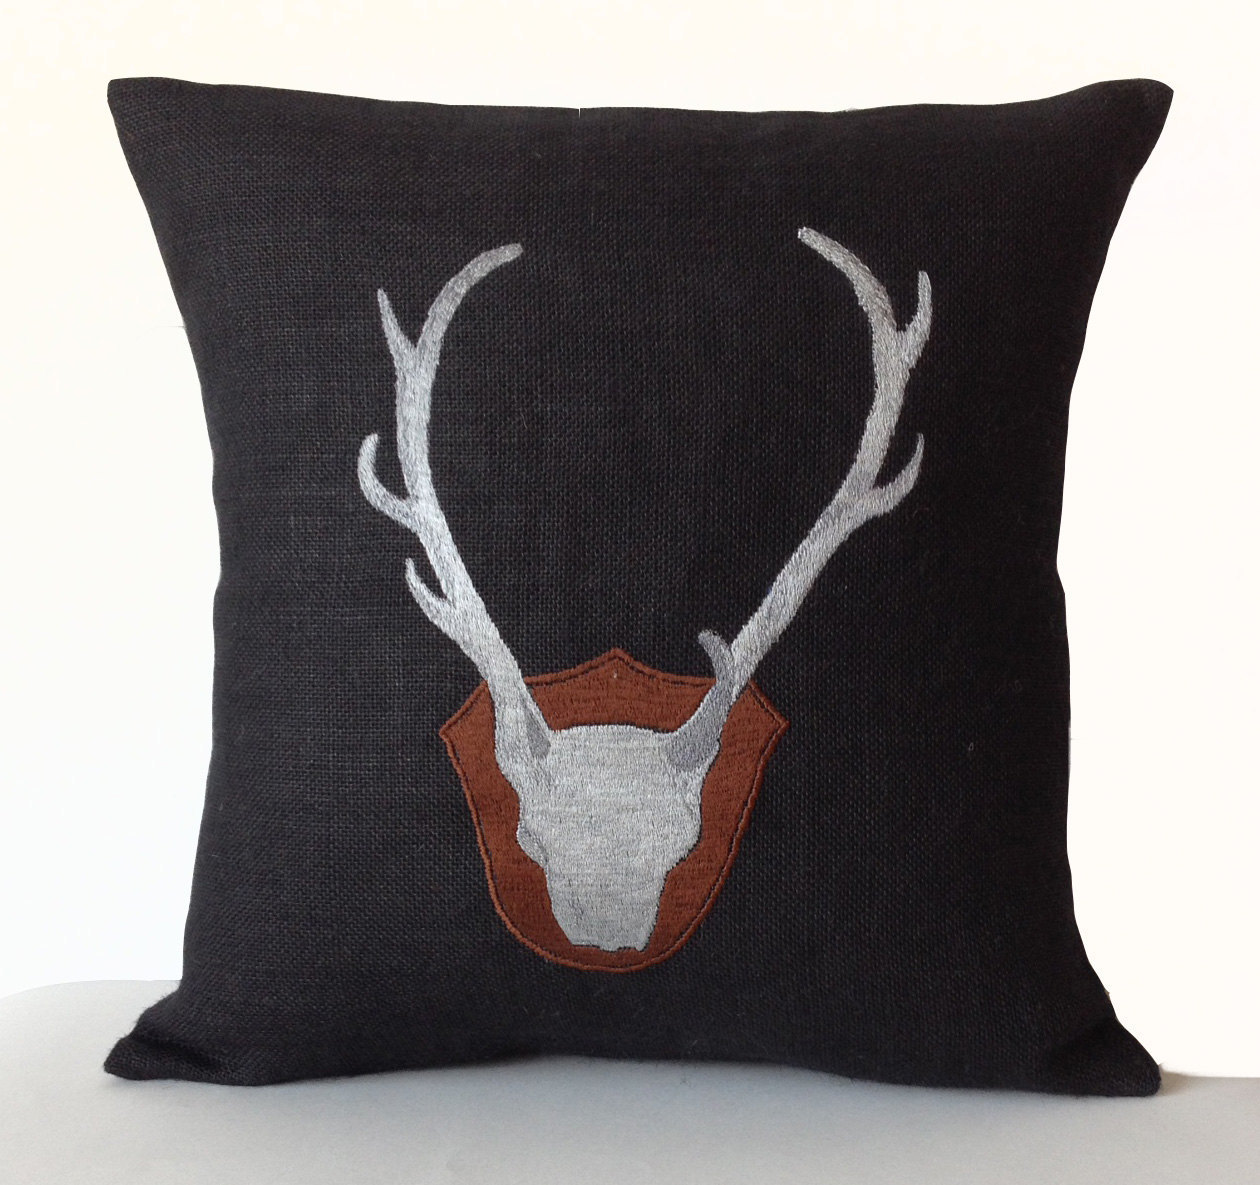 Throw Pillows Deer : Burlap Throw Pillow Cover -Deer Antler Silhoutte Pillows -Burlap Cushion 20x20- - Bed Pillows